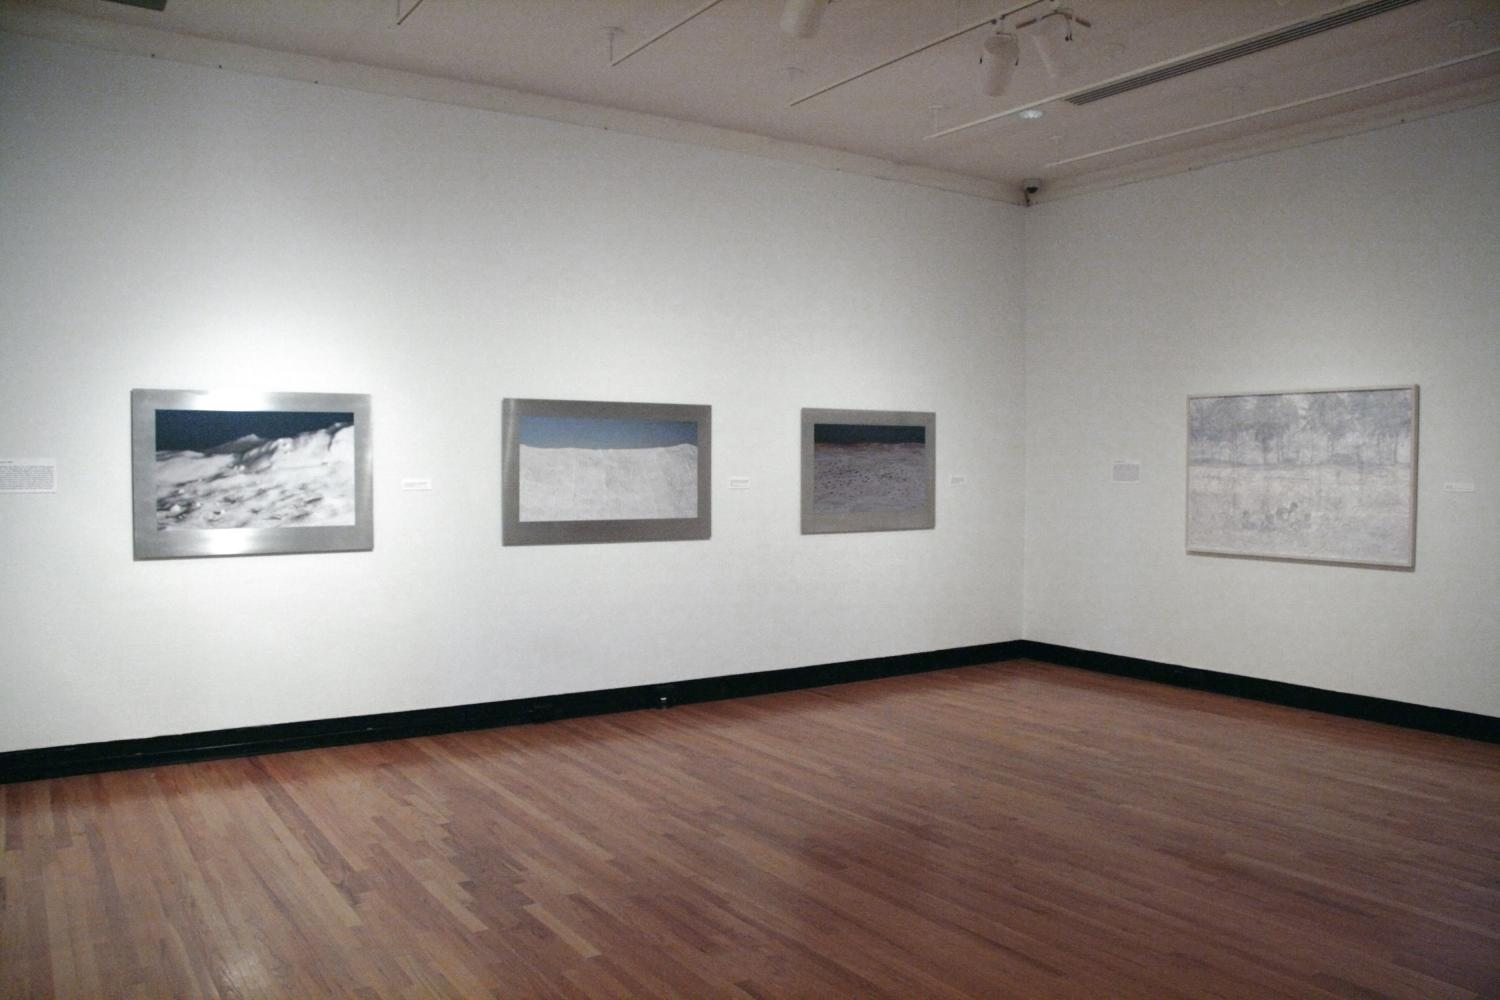 Allan deSouza: The Farthest Point, installation at Krannert Art Museum, University of Illinois at Urbana-Champaign, 2010.